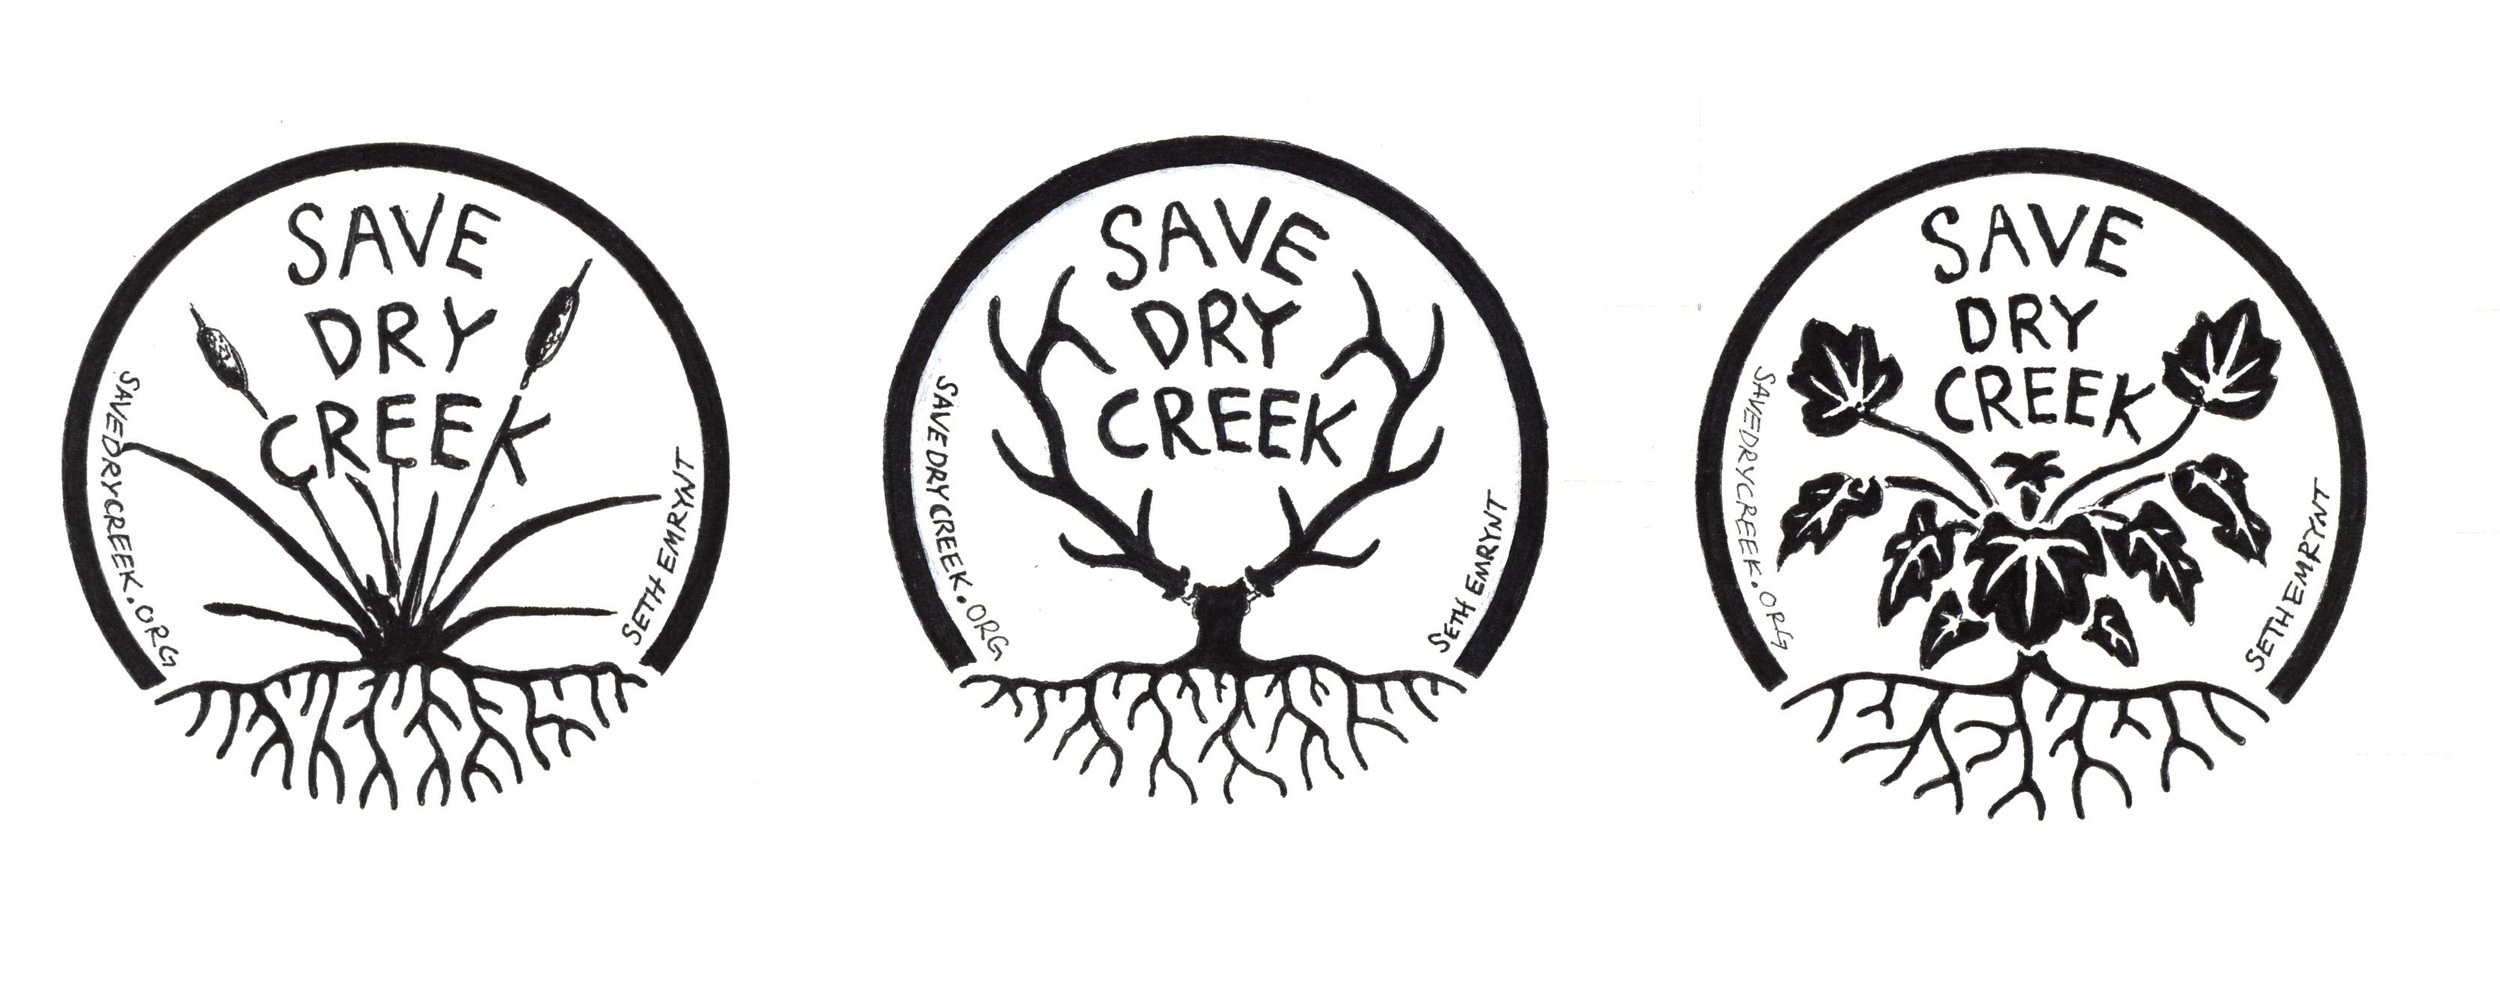 Stickers and buttons designed by  Seth Emrynt. Check out more of his art  here.